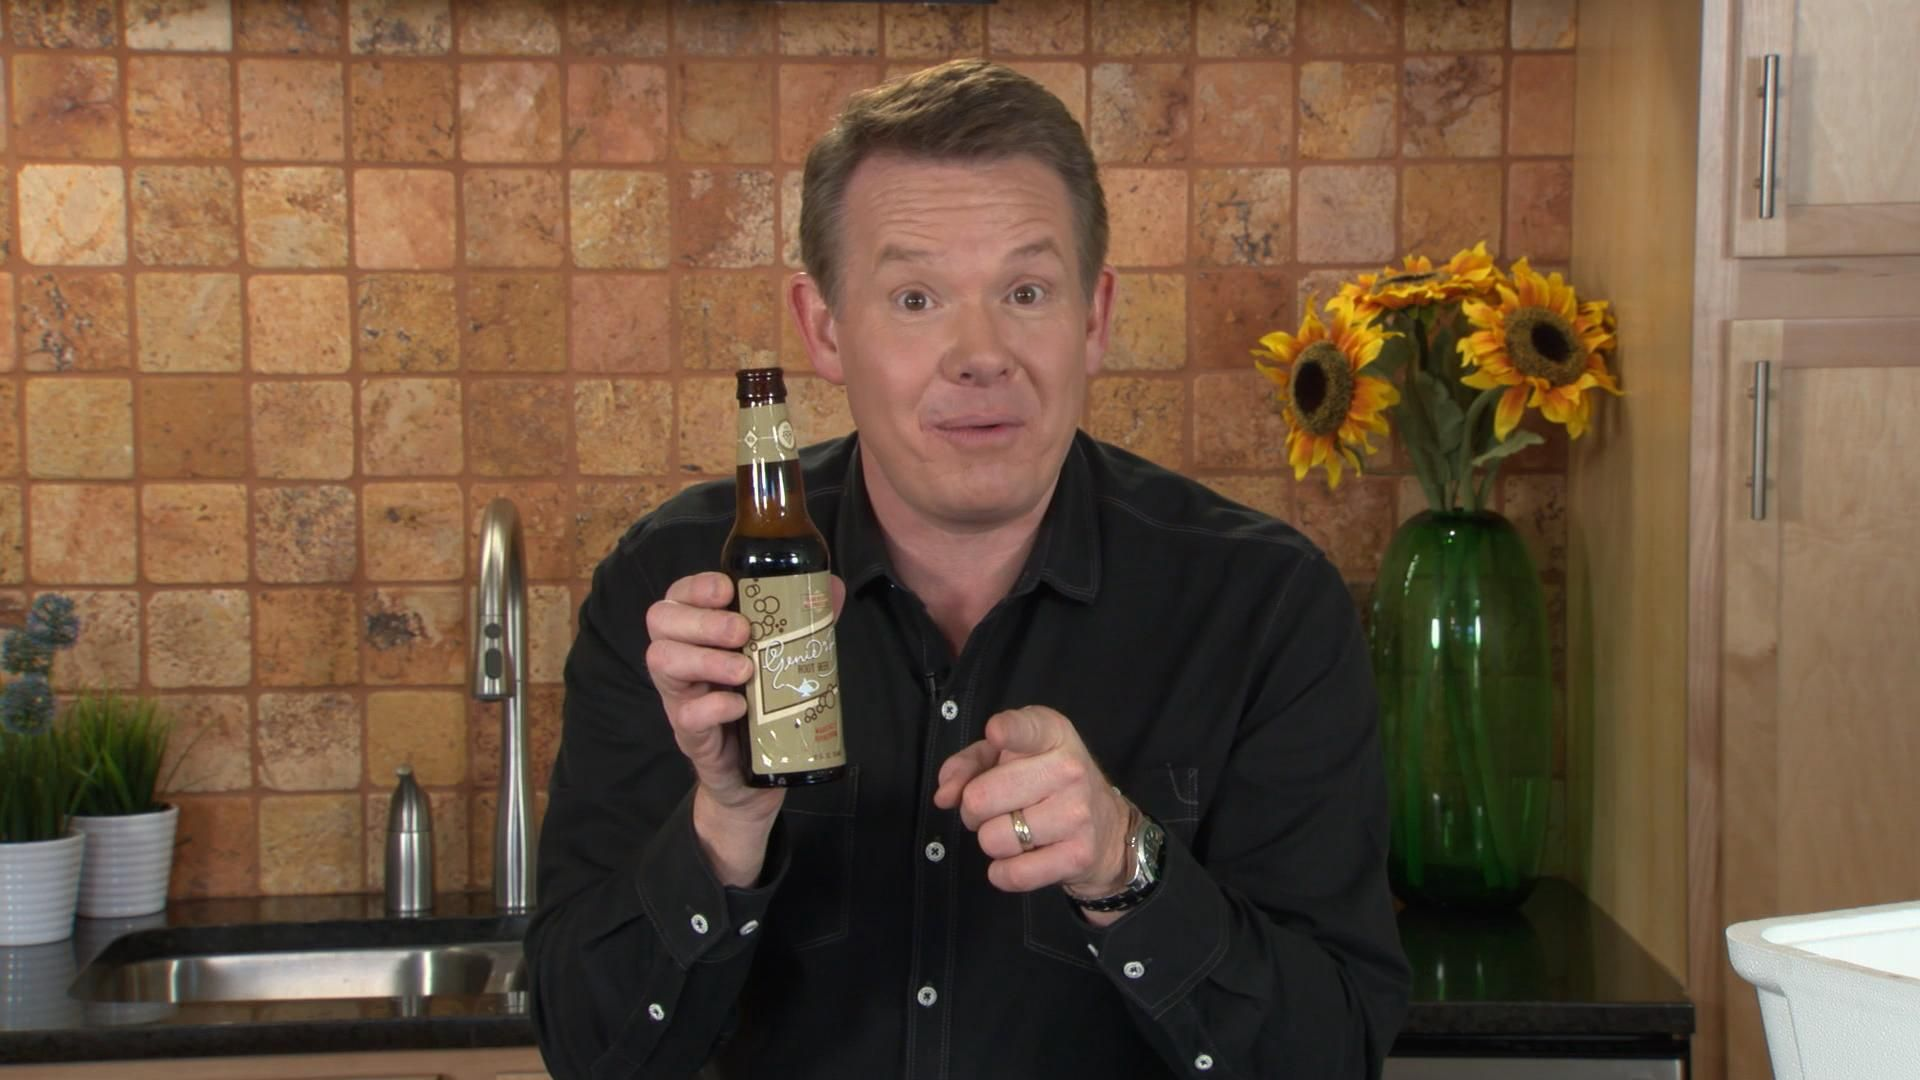 Steve Spangler uses science and some dry ice to make DIY